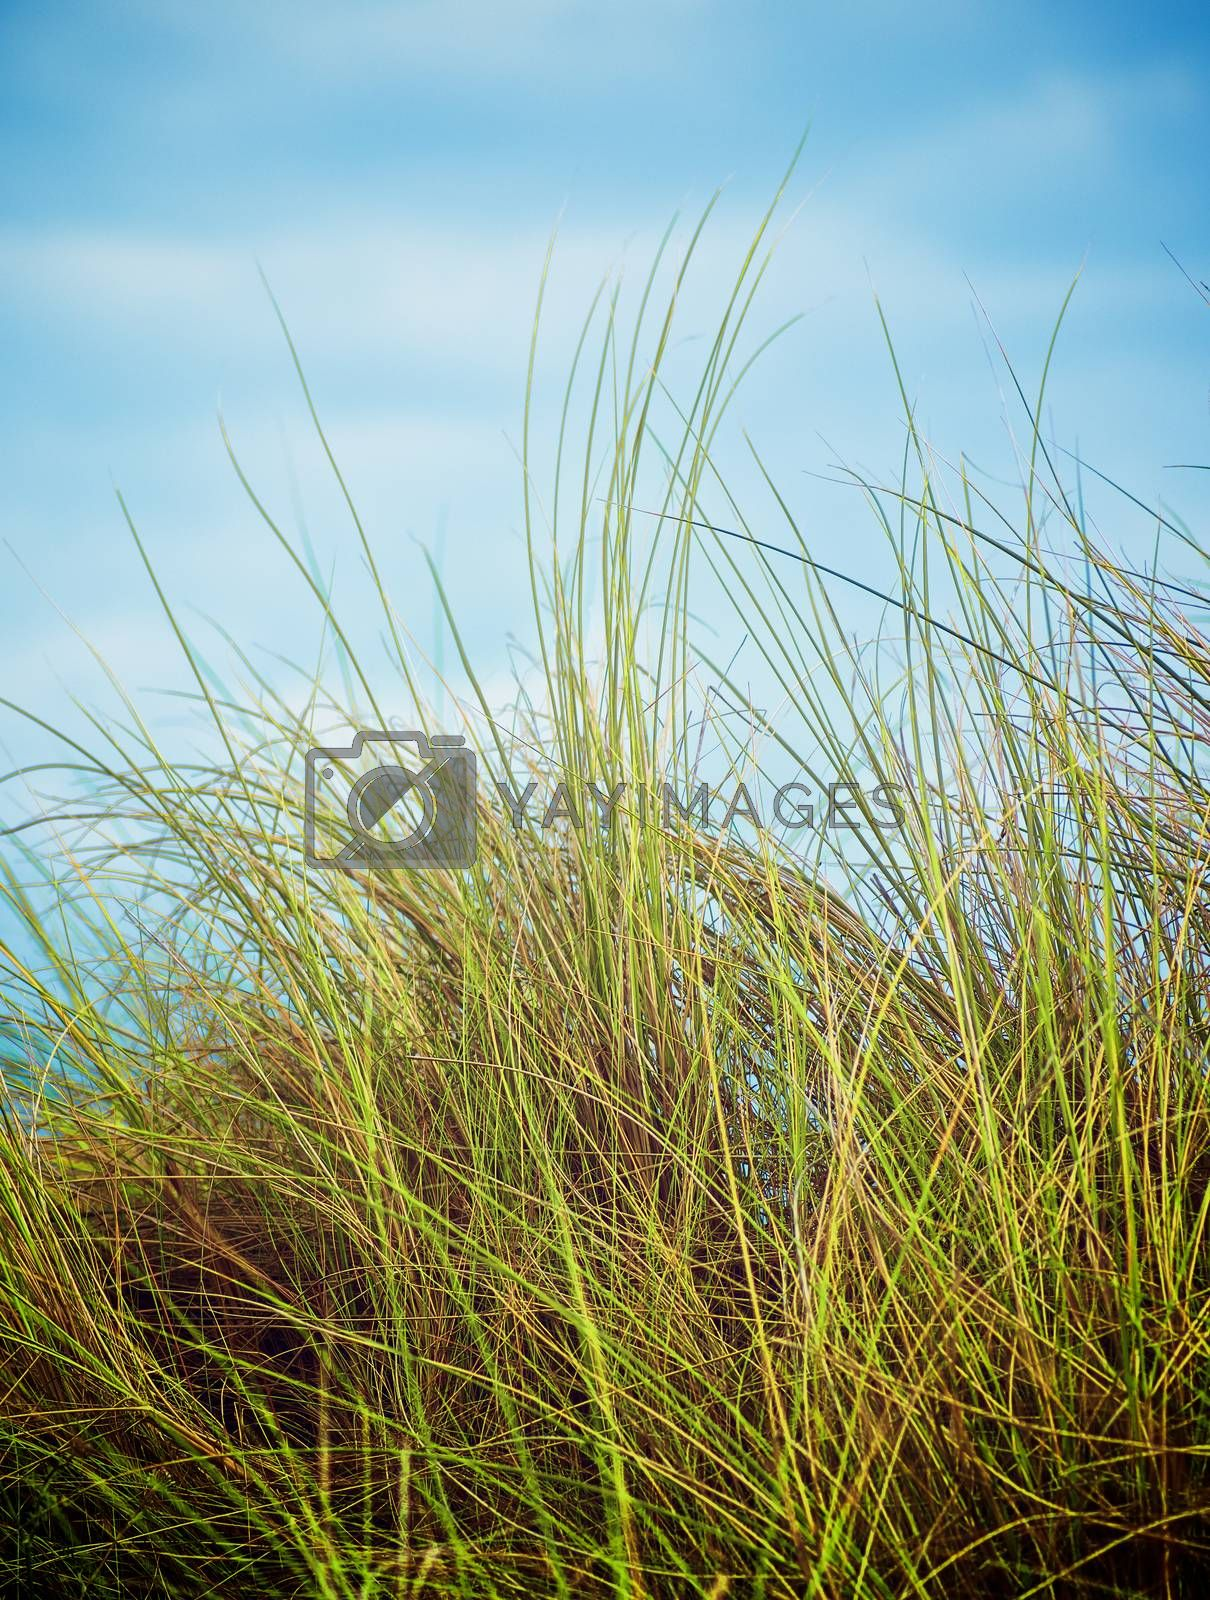 Feather-Grass on Blurred Blue Sky background in Summer Day Outdoors